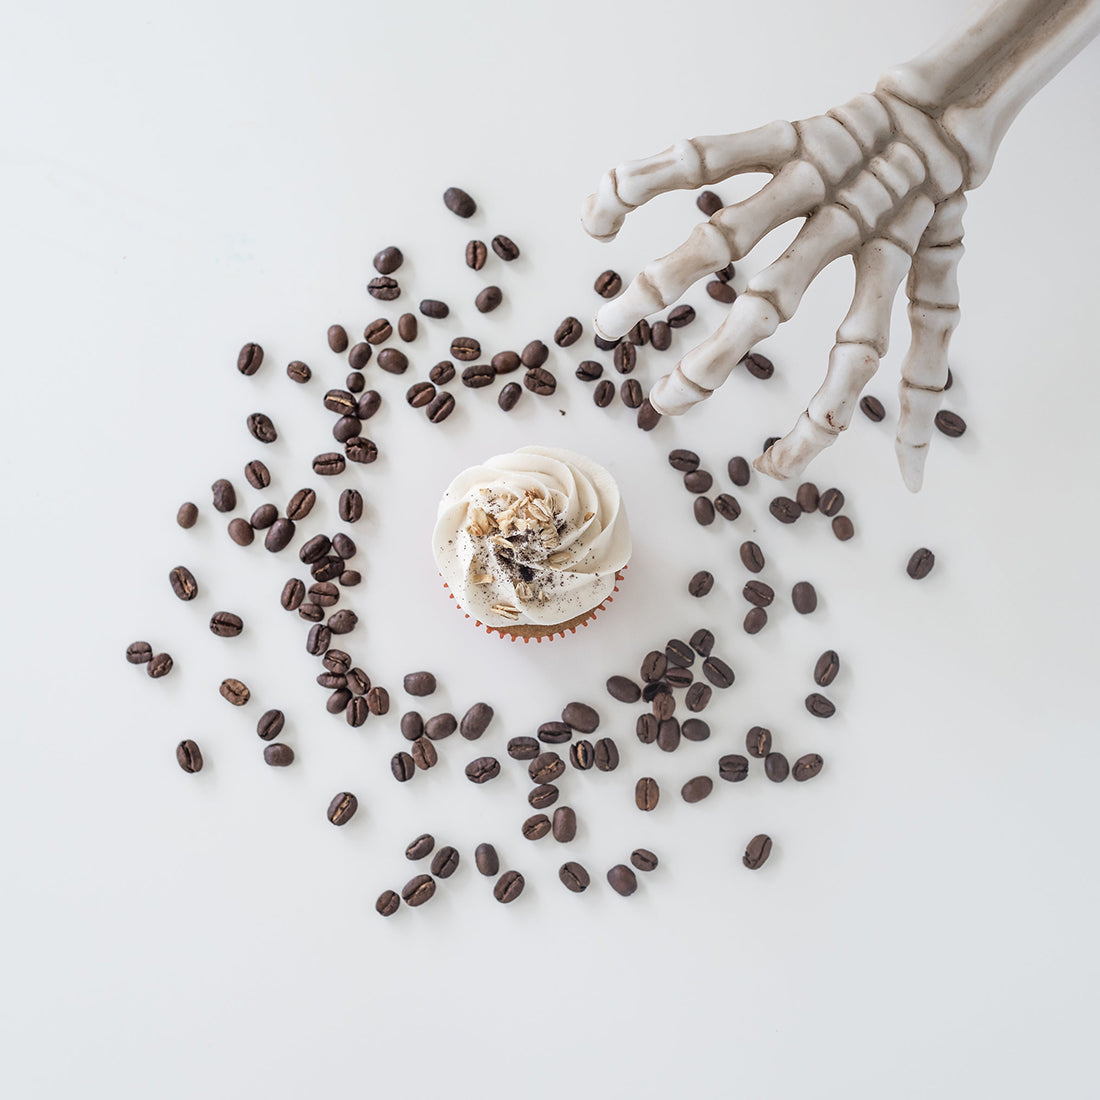 Image from above of a Miss Jones Baking Co Pumpkin Spice Latte (PSL) Cupcake surrounded by coffee beans next to a skeleton hand